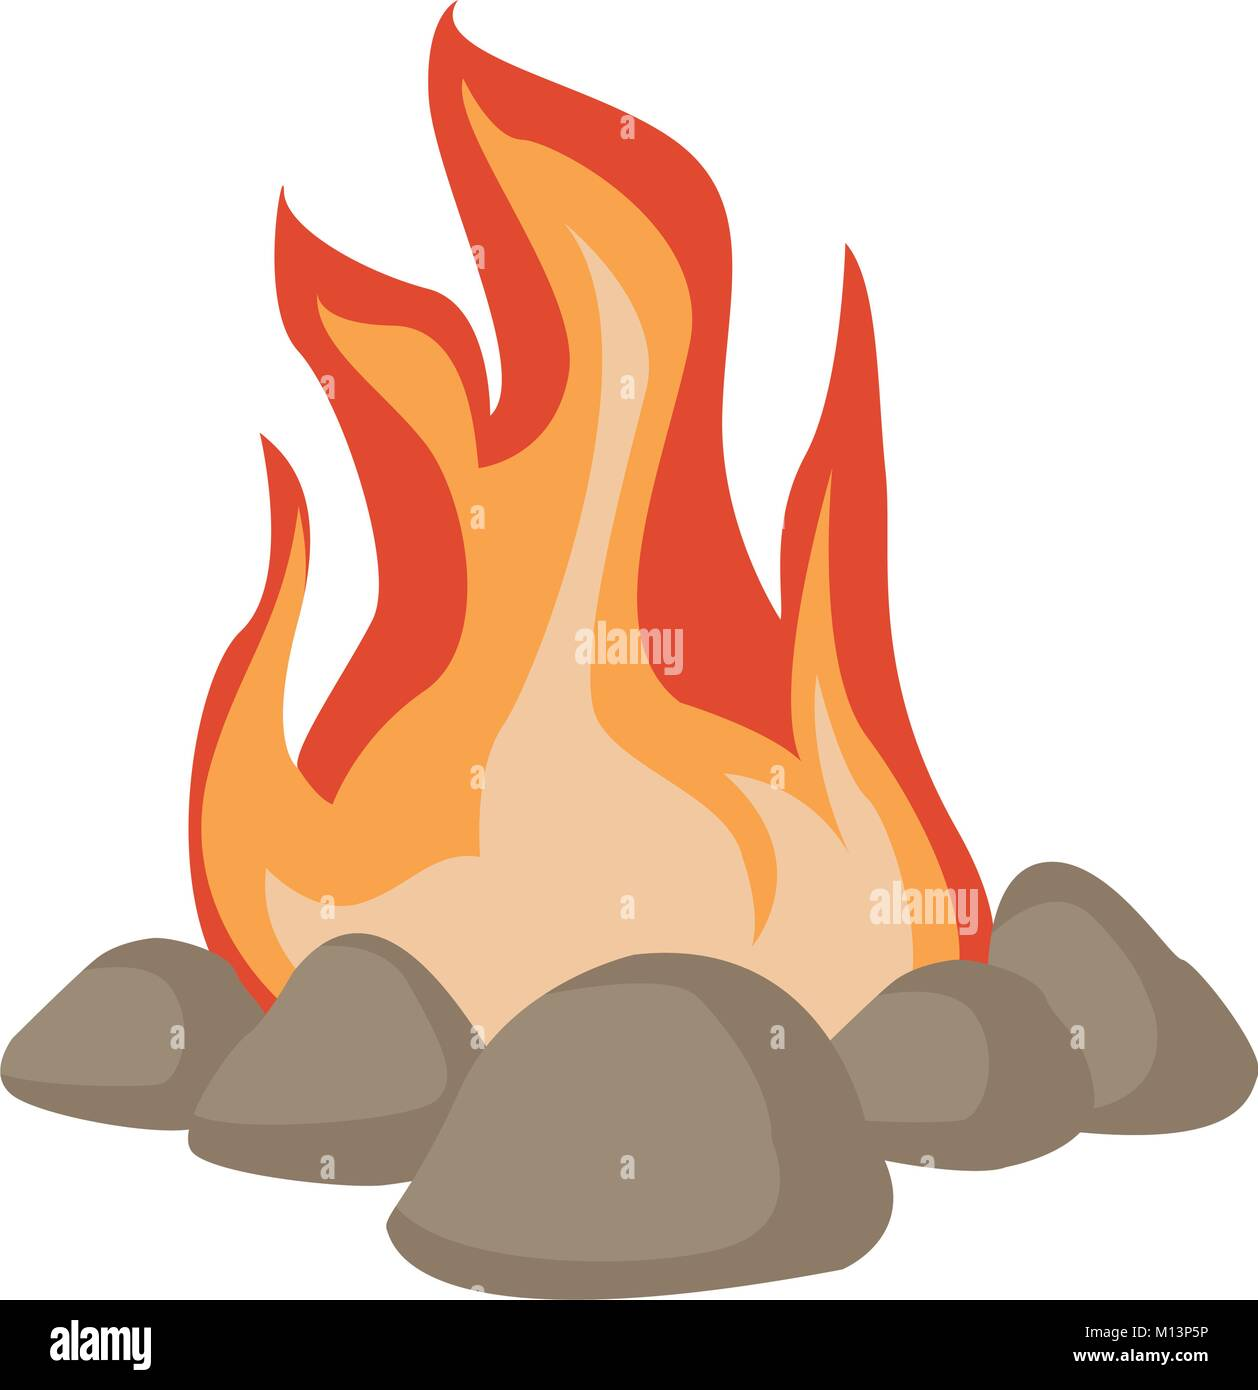 bonfire cartoon isolated stock vector art illustration vector rh alamy com cartoon bonfire night images bonfire cartoon images